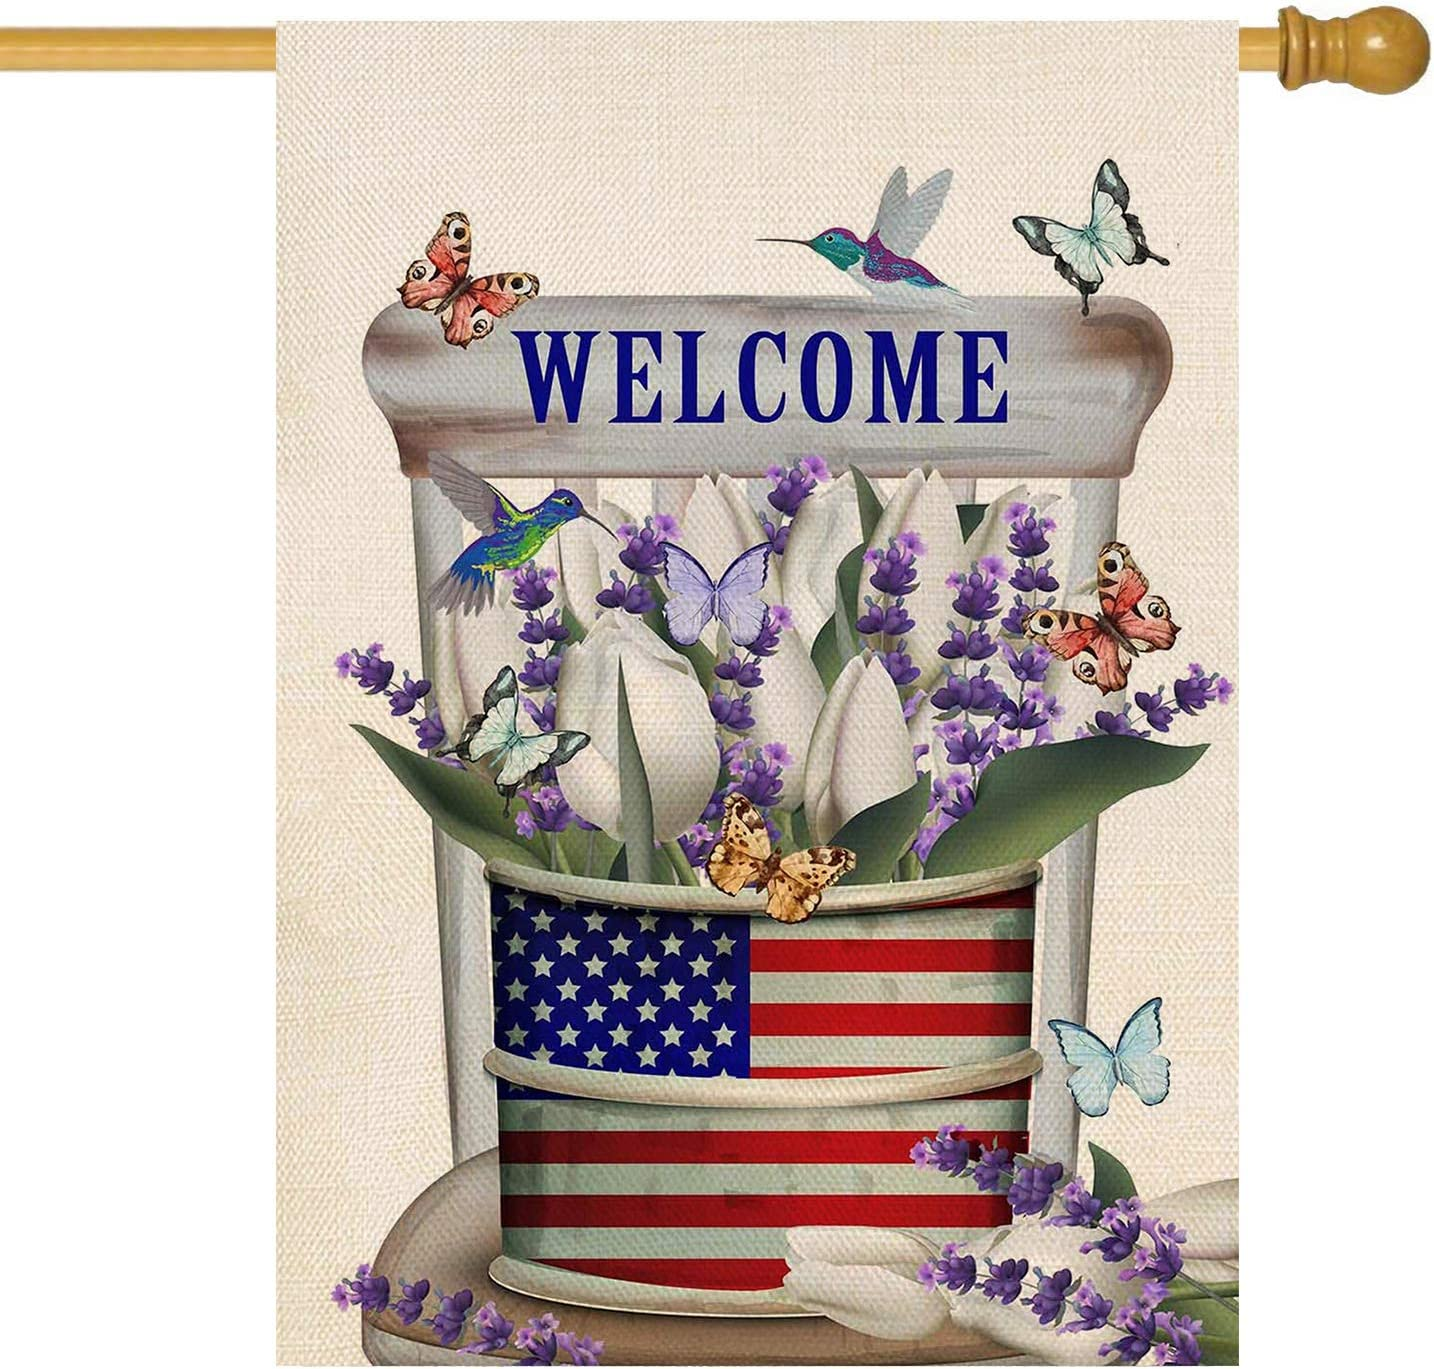 ORTIGIA Home Decorative Welcome Garden House Flag Double Sided Verticle American Flag Bottle of Tulip Lavender Flowers Butterfly Hummingbird Seasonal Yard House Flag for Spring Summer 28x40 Inch